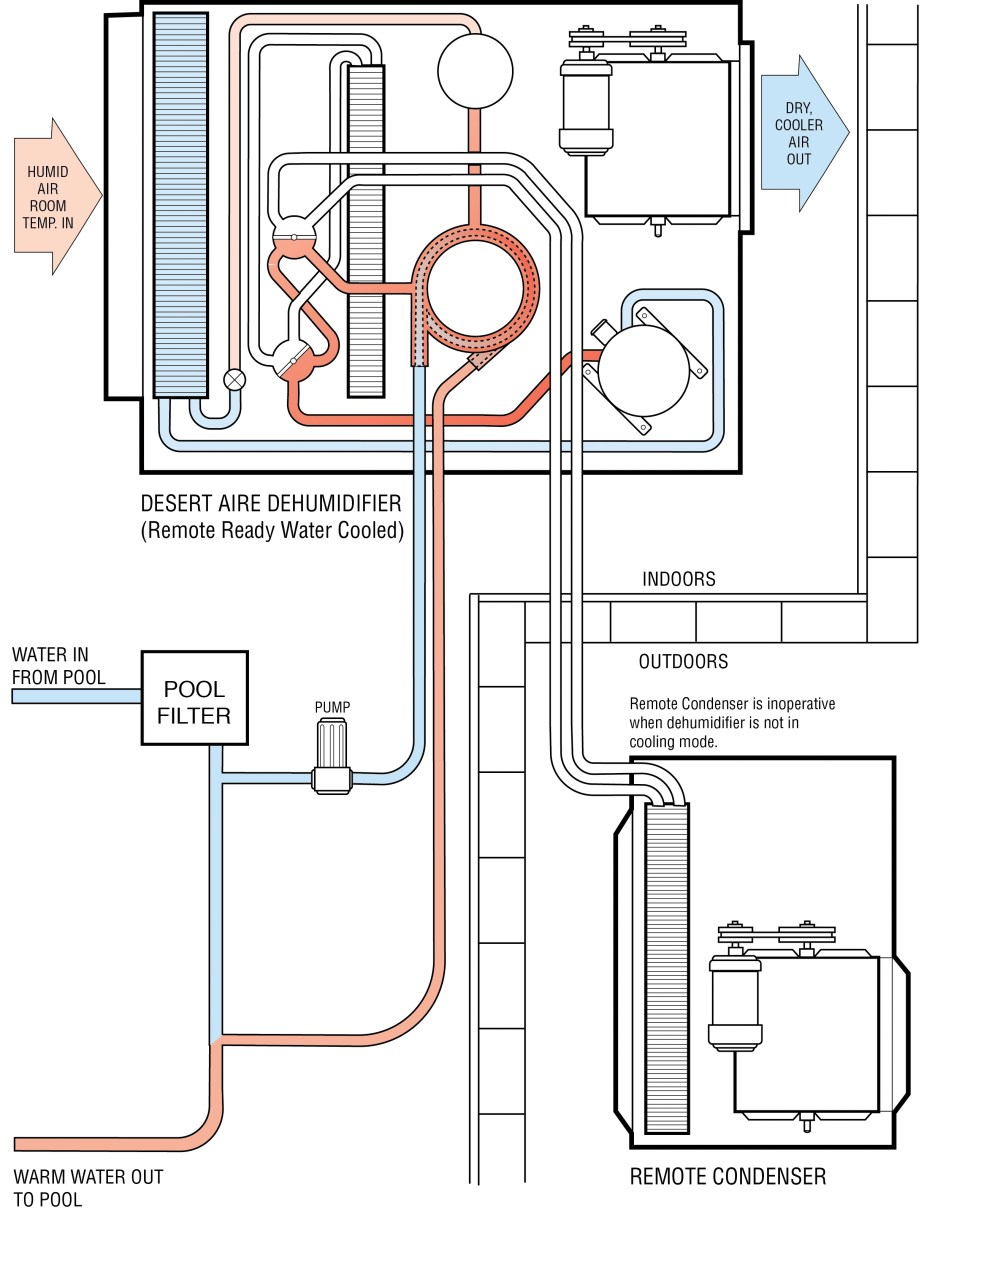 medium resolution of figure 6 water heating model with remote condenser in water heating mode